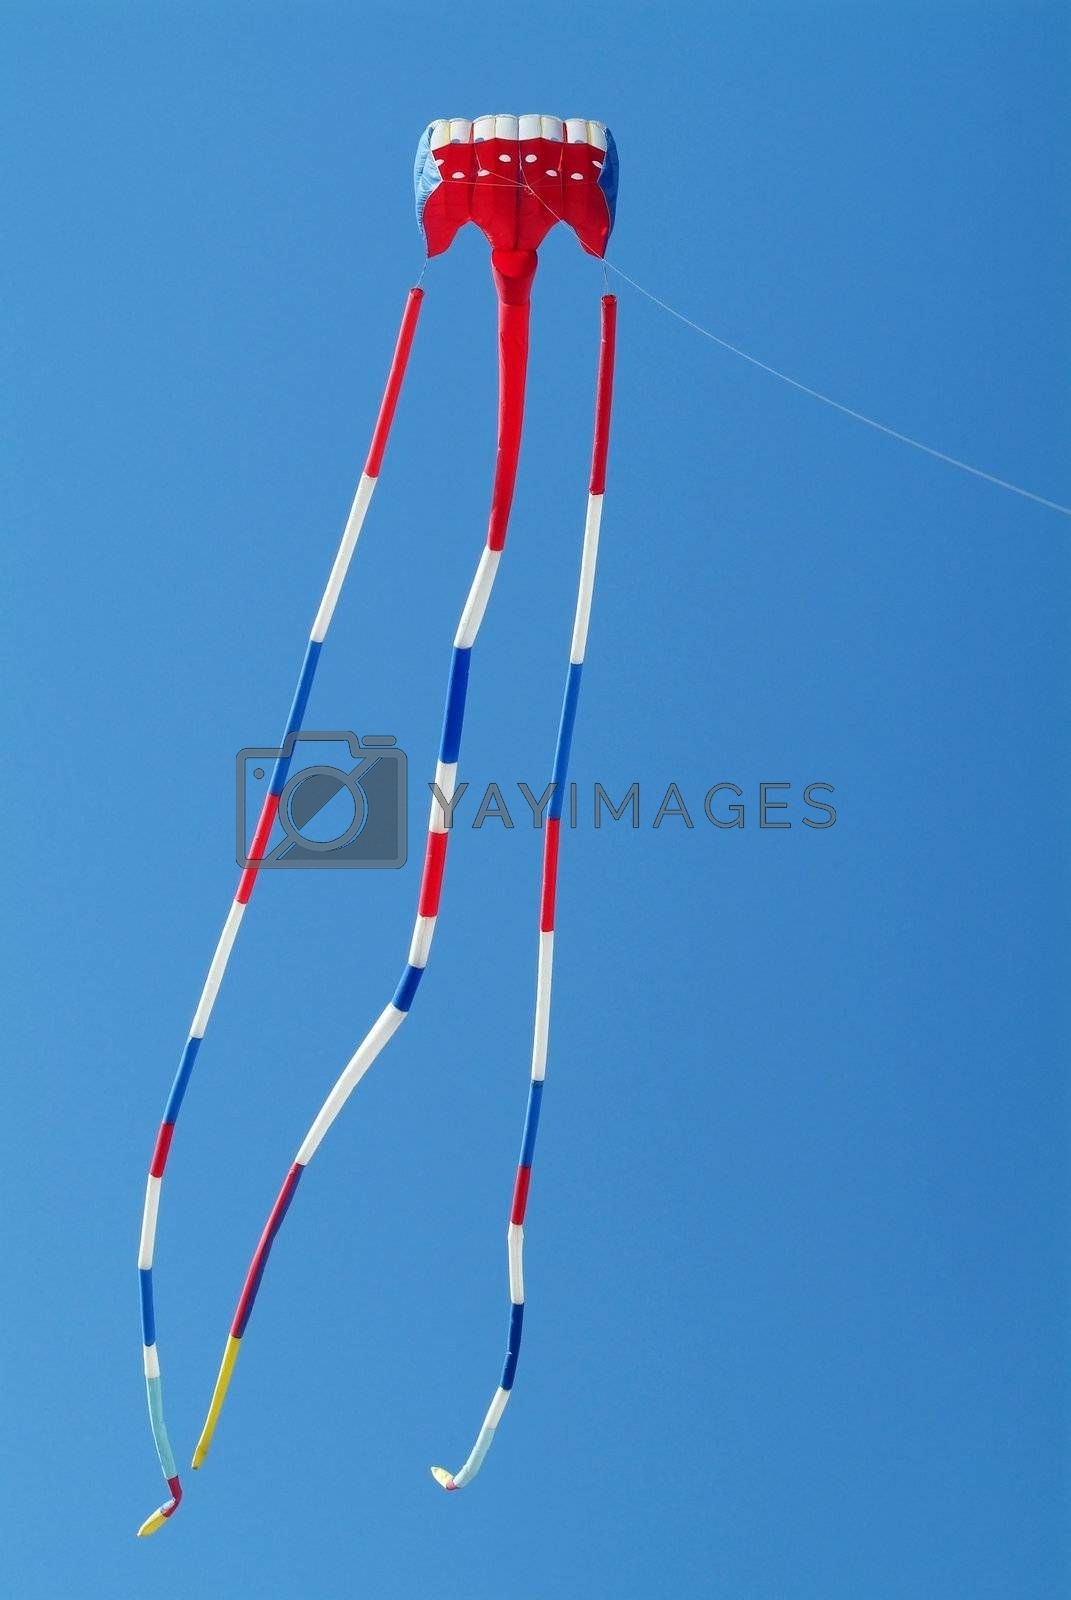 Red, white and blue kite by epixx